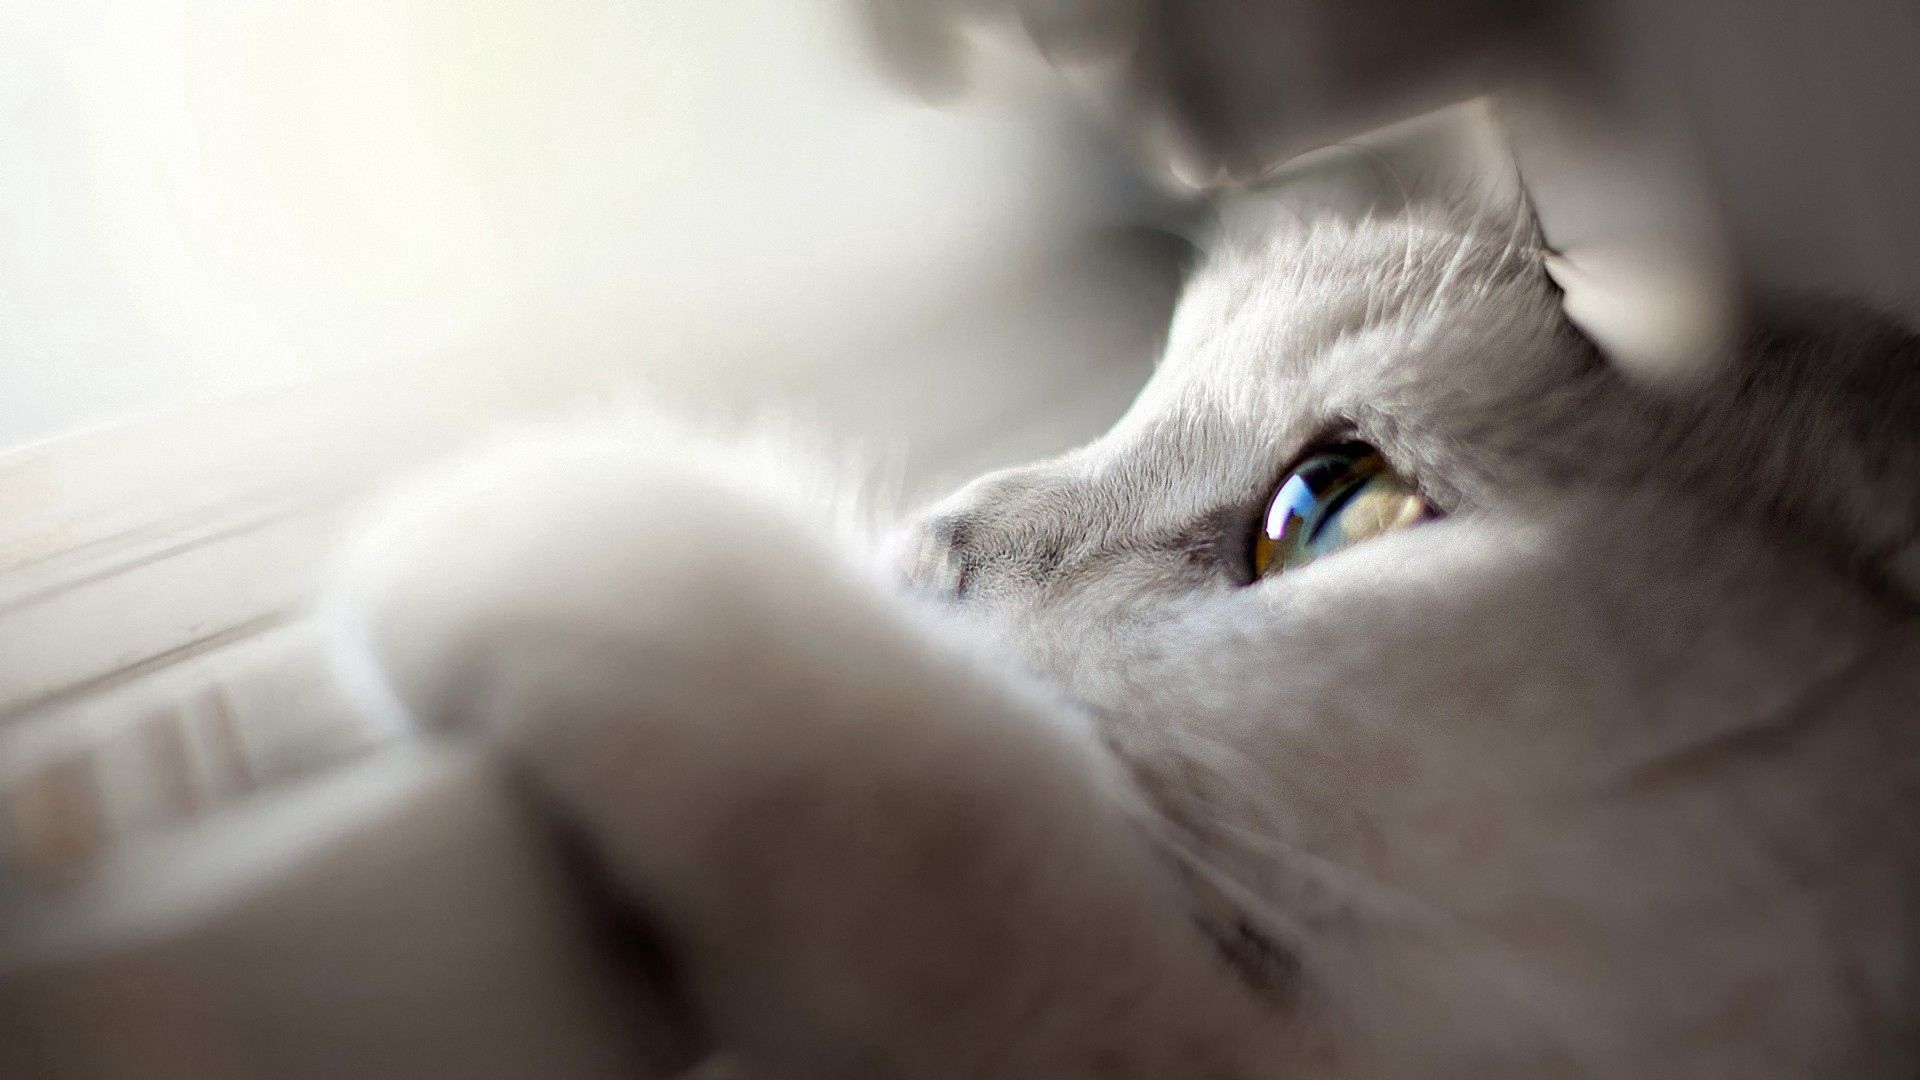 70008 download wallpaper Animals, Cat, Muzzle, Eyes, Paw, Peek Out, Look Out screensavers and pictures for free